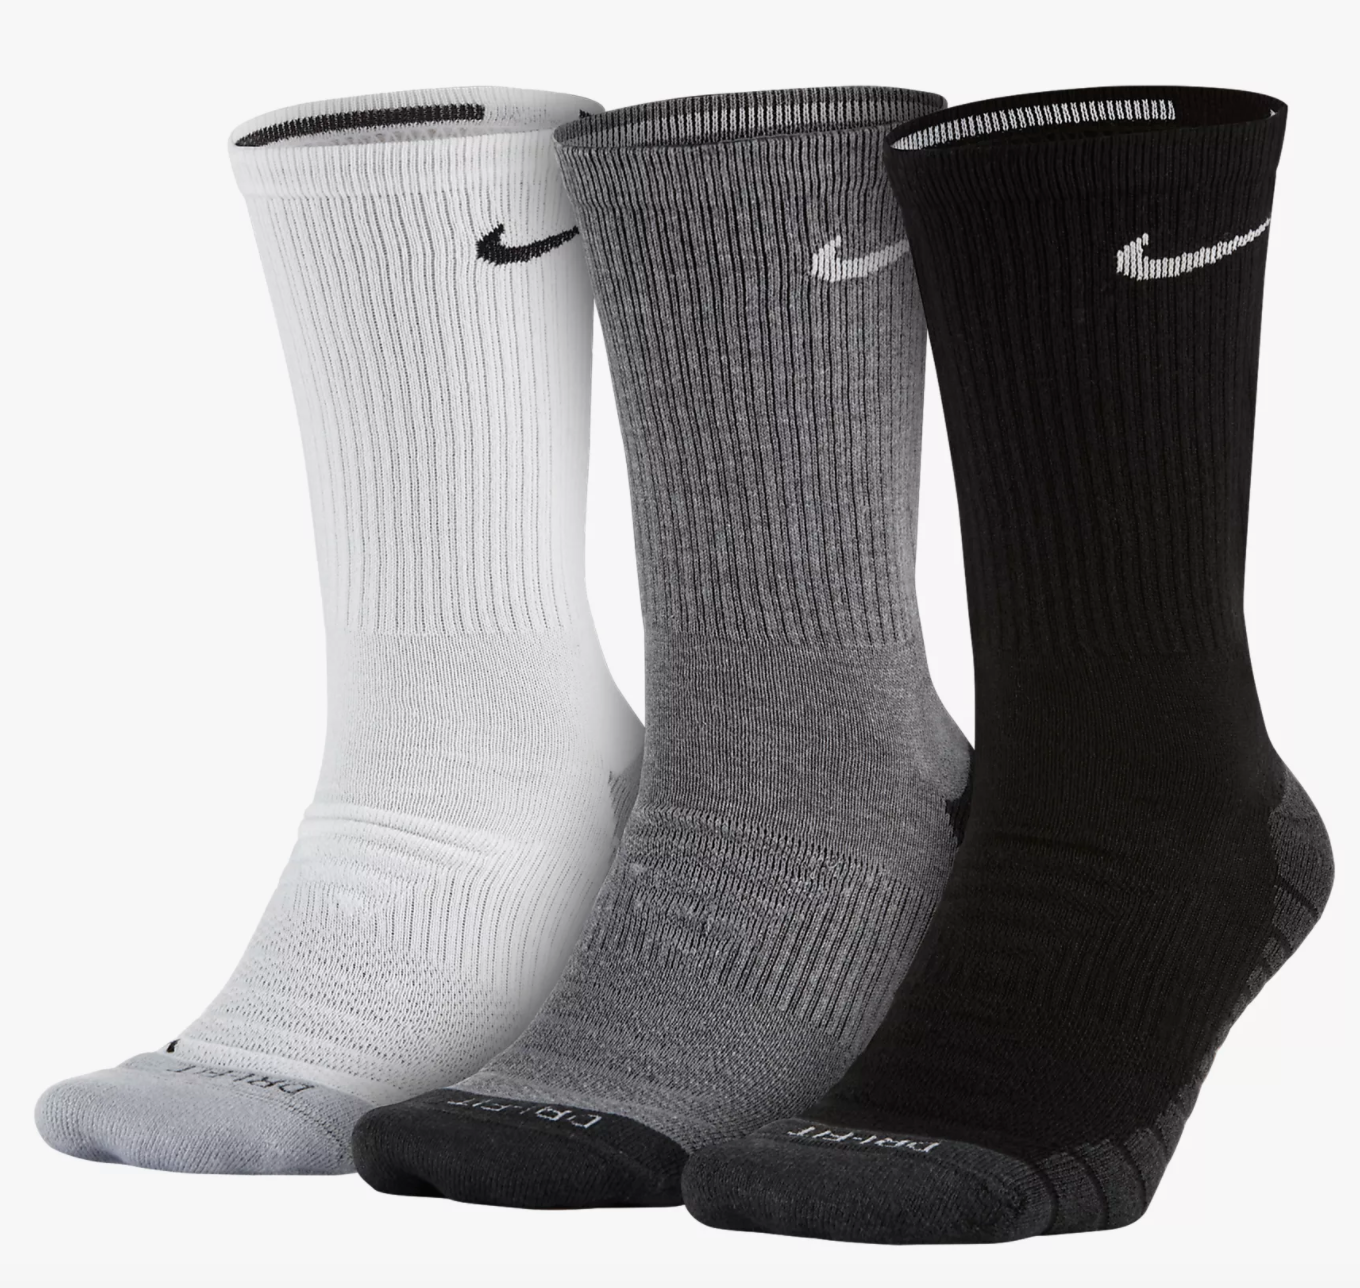 The socks in white, gray, and black